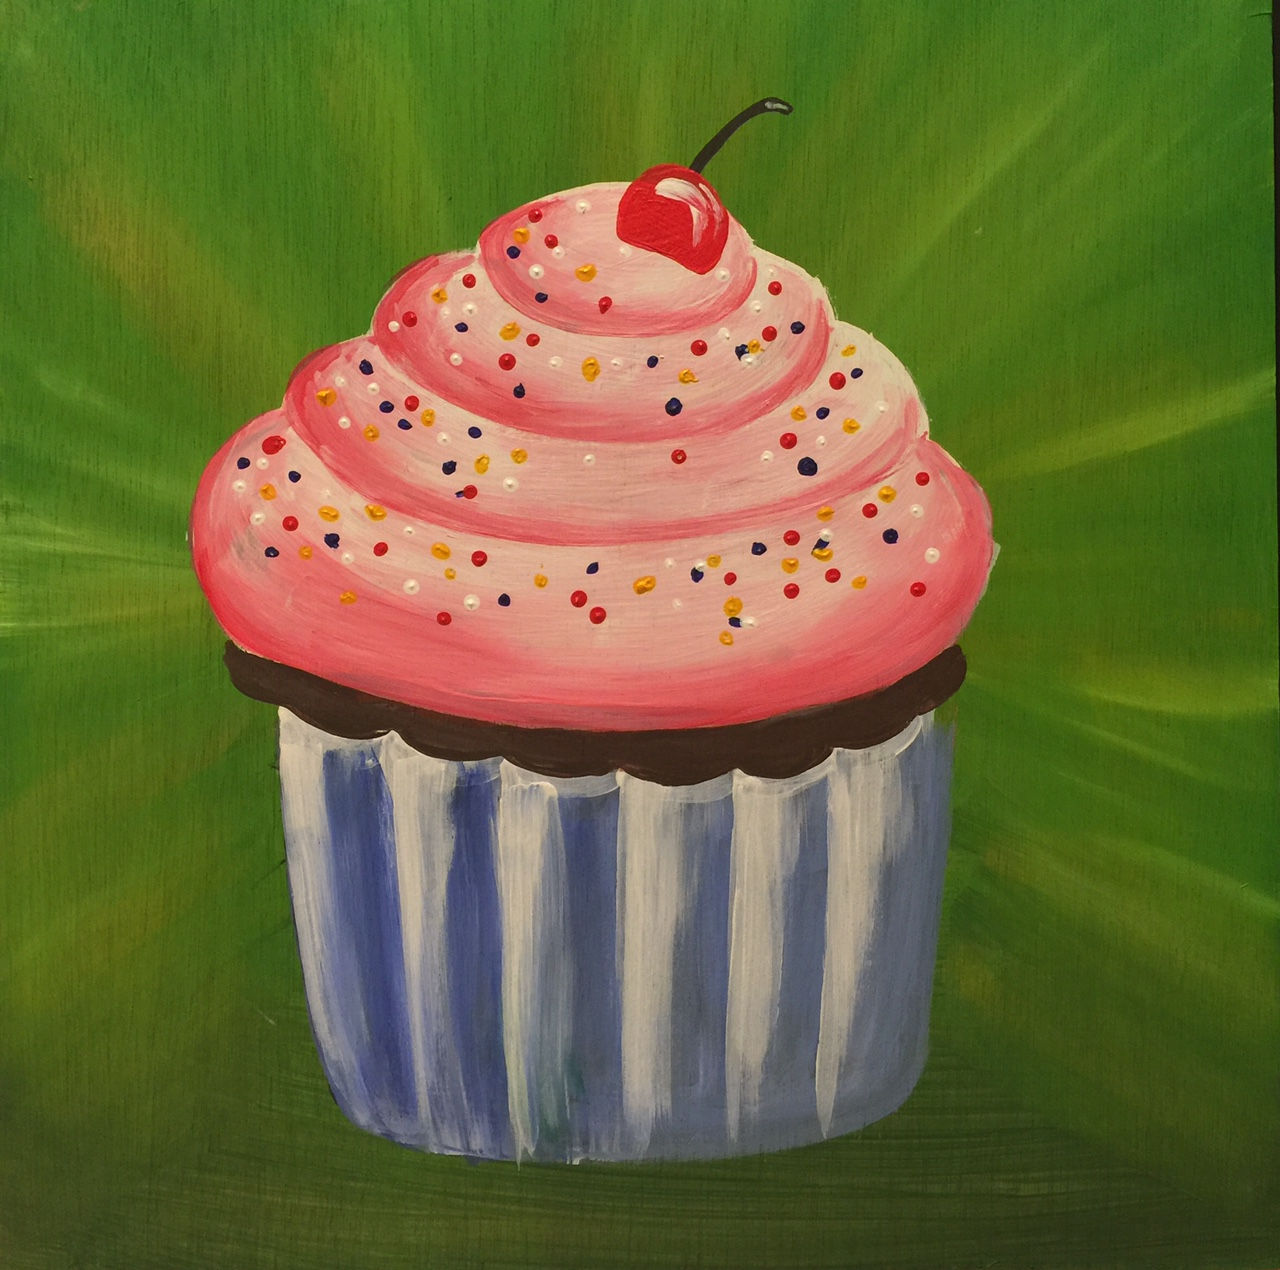 Cake Artist Champaign Illinois : Family Friendly Painting Parties with Lola s Brush (and a ...